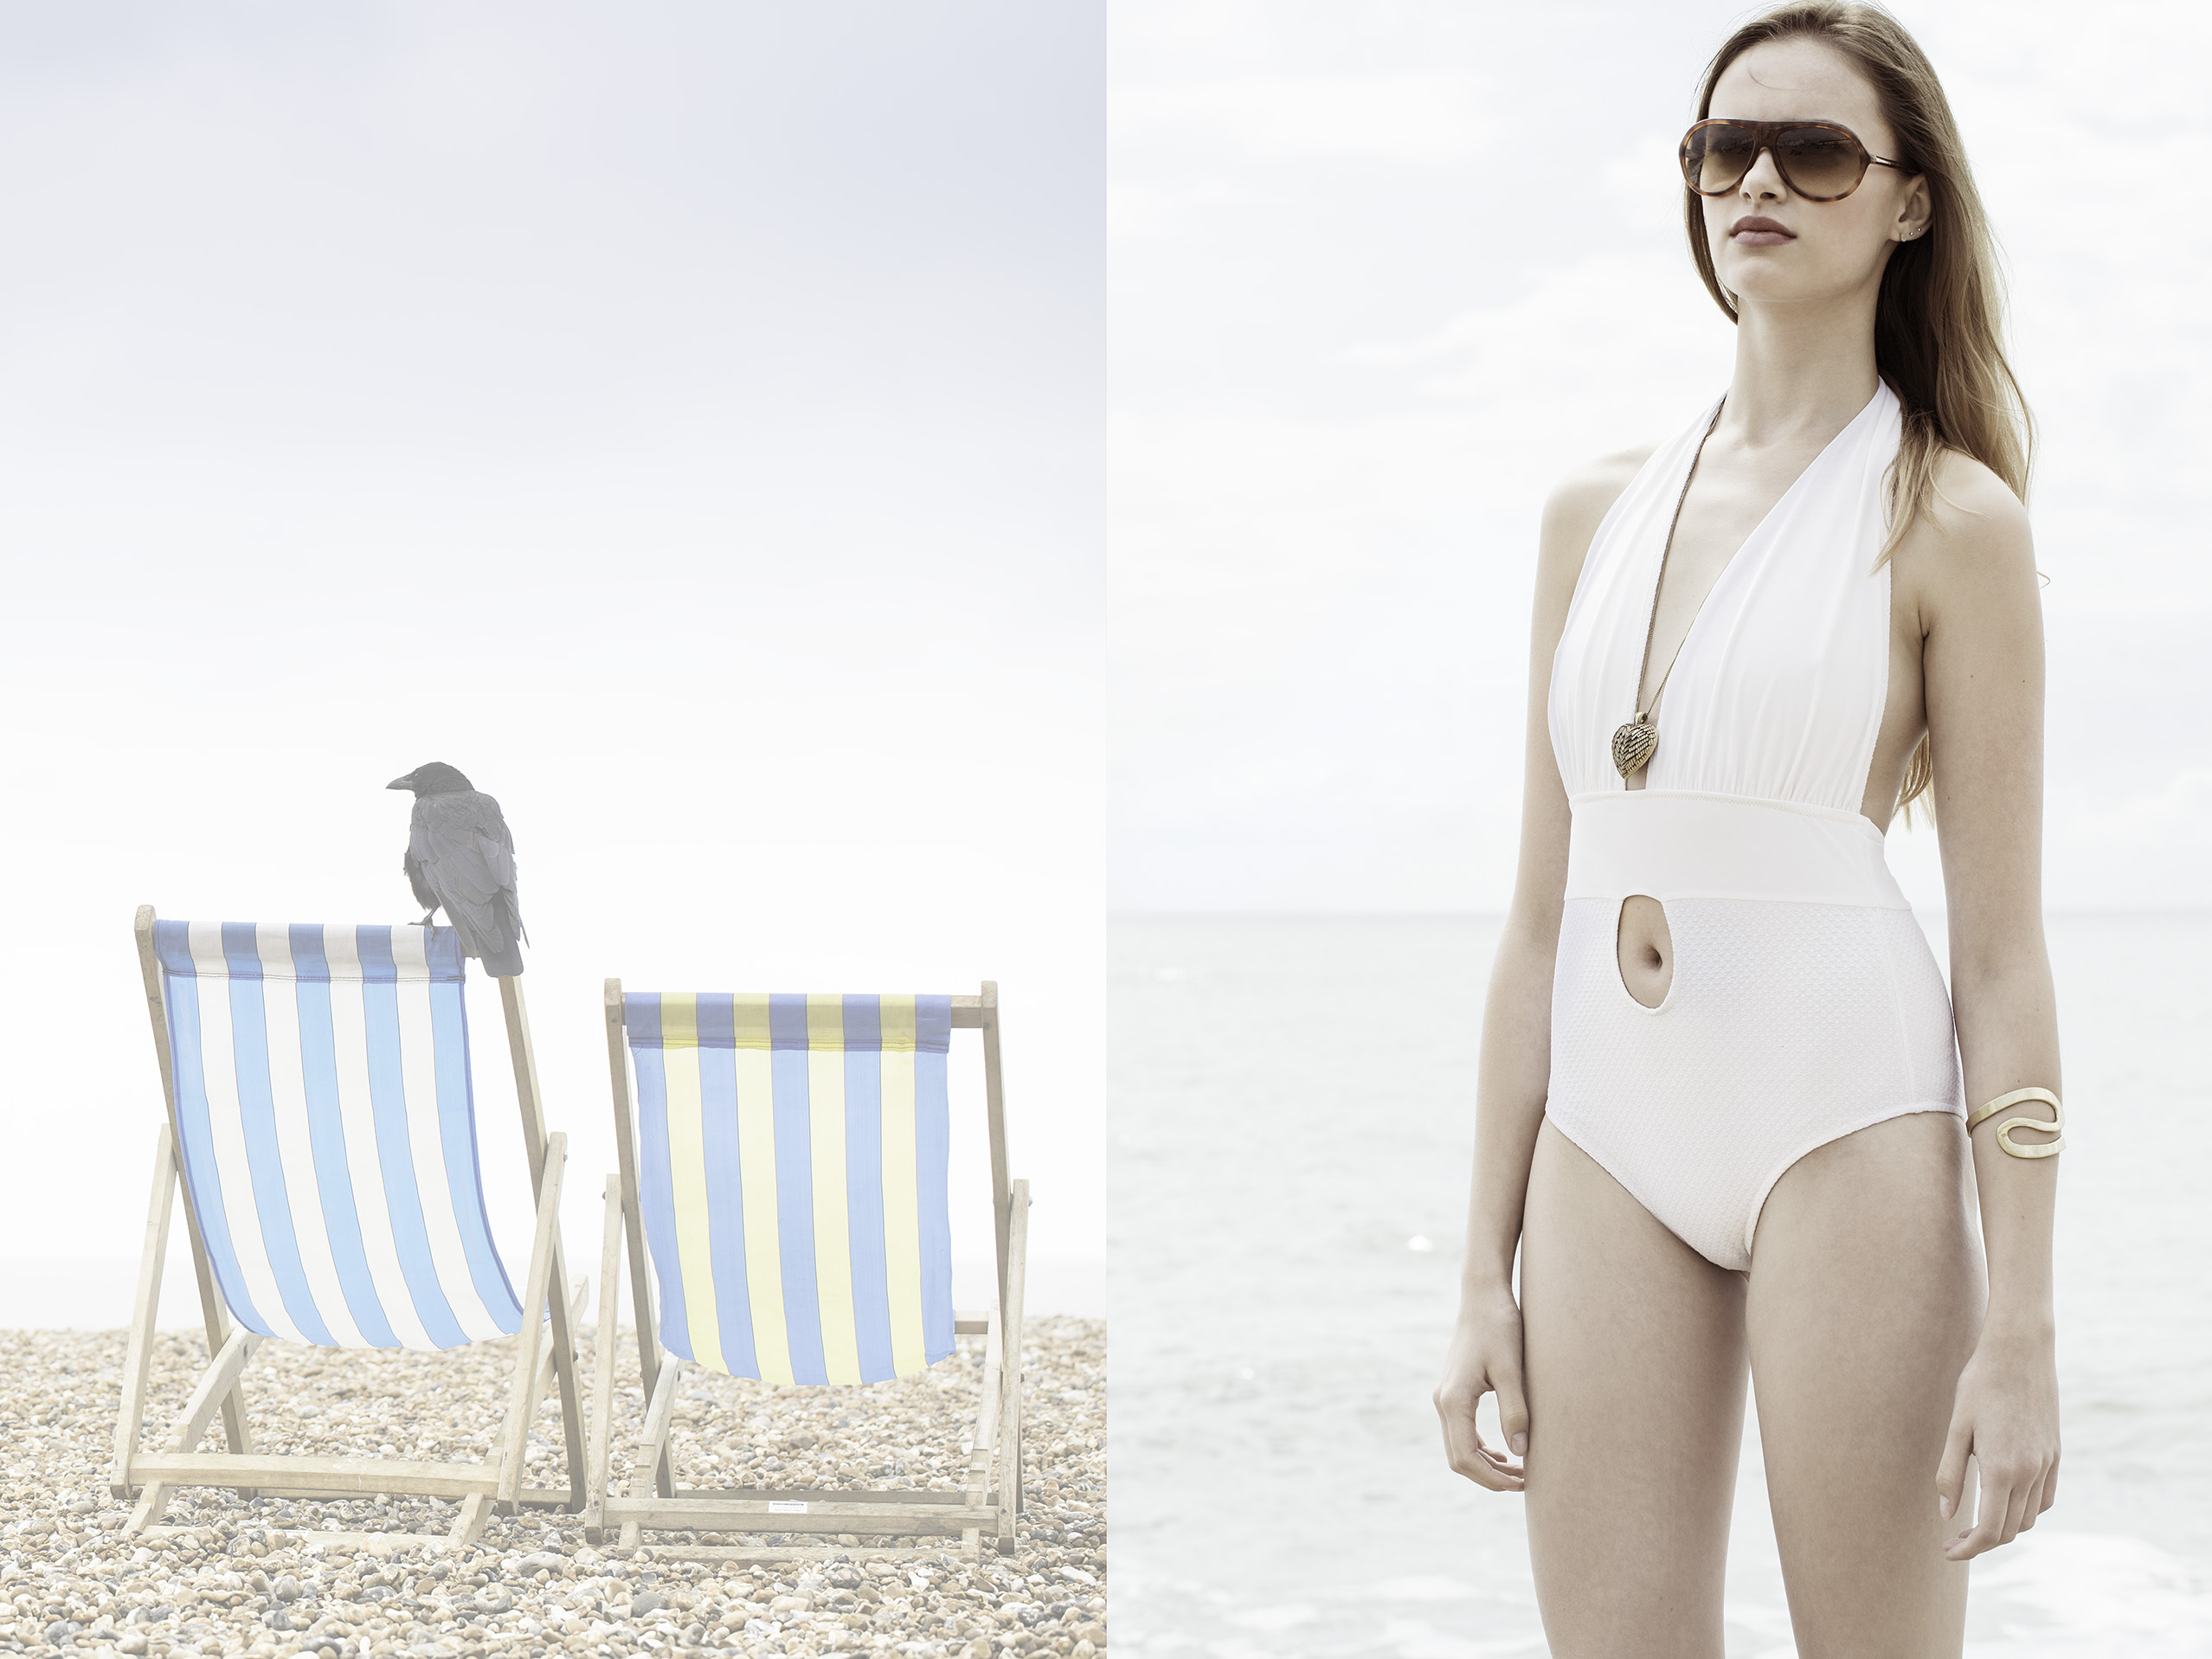 Photo: by London Fashion Photographer Maggie Yescombe, editorial, advertising, designer swimwear collection